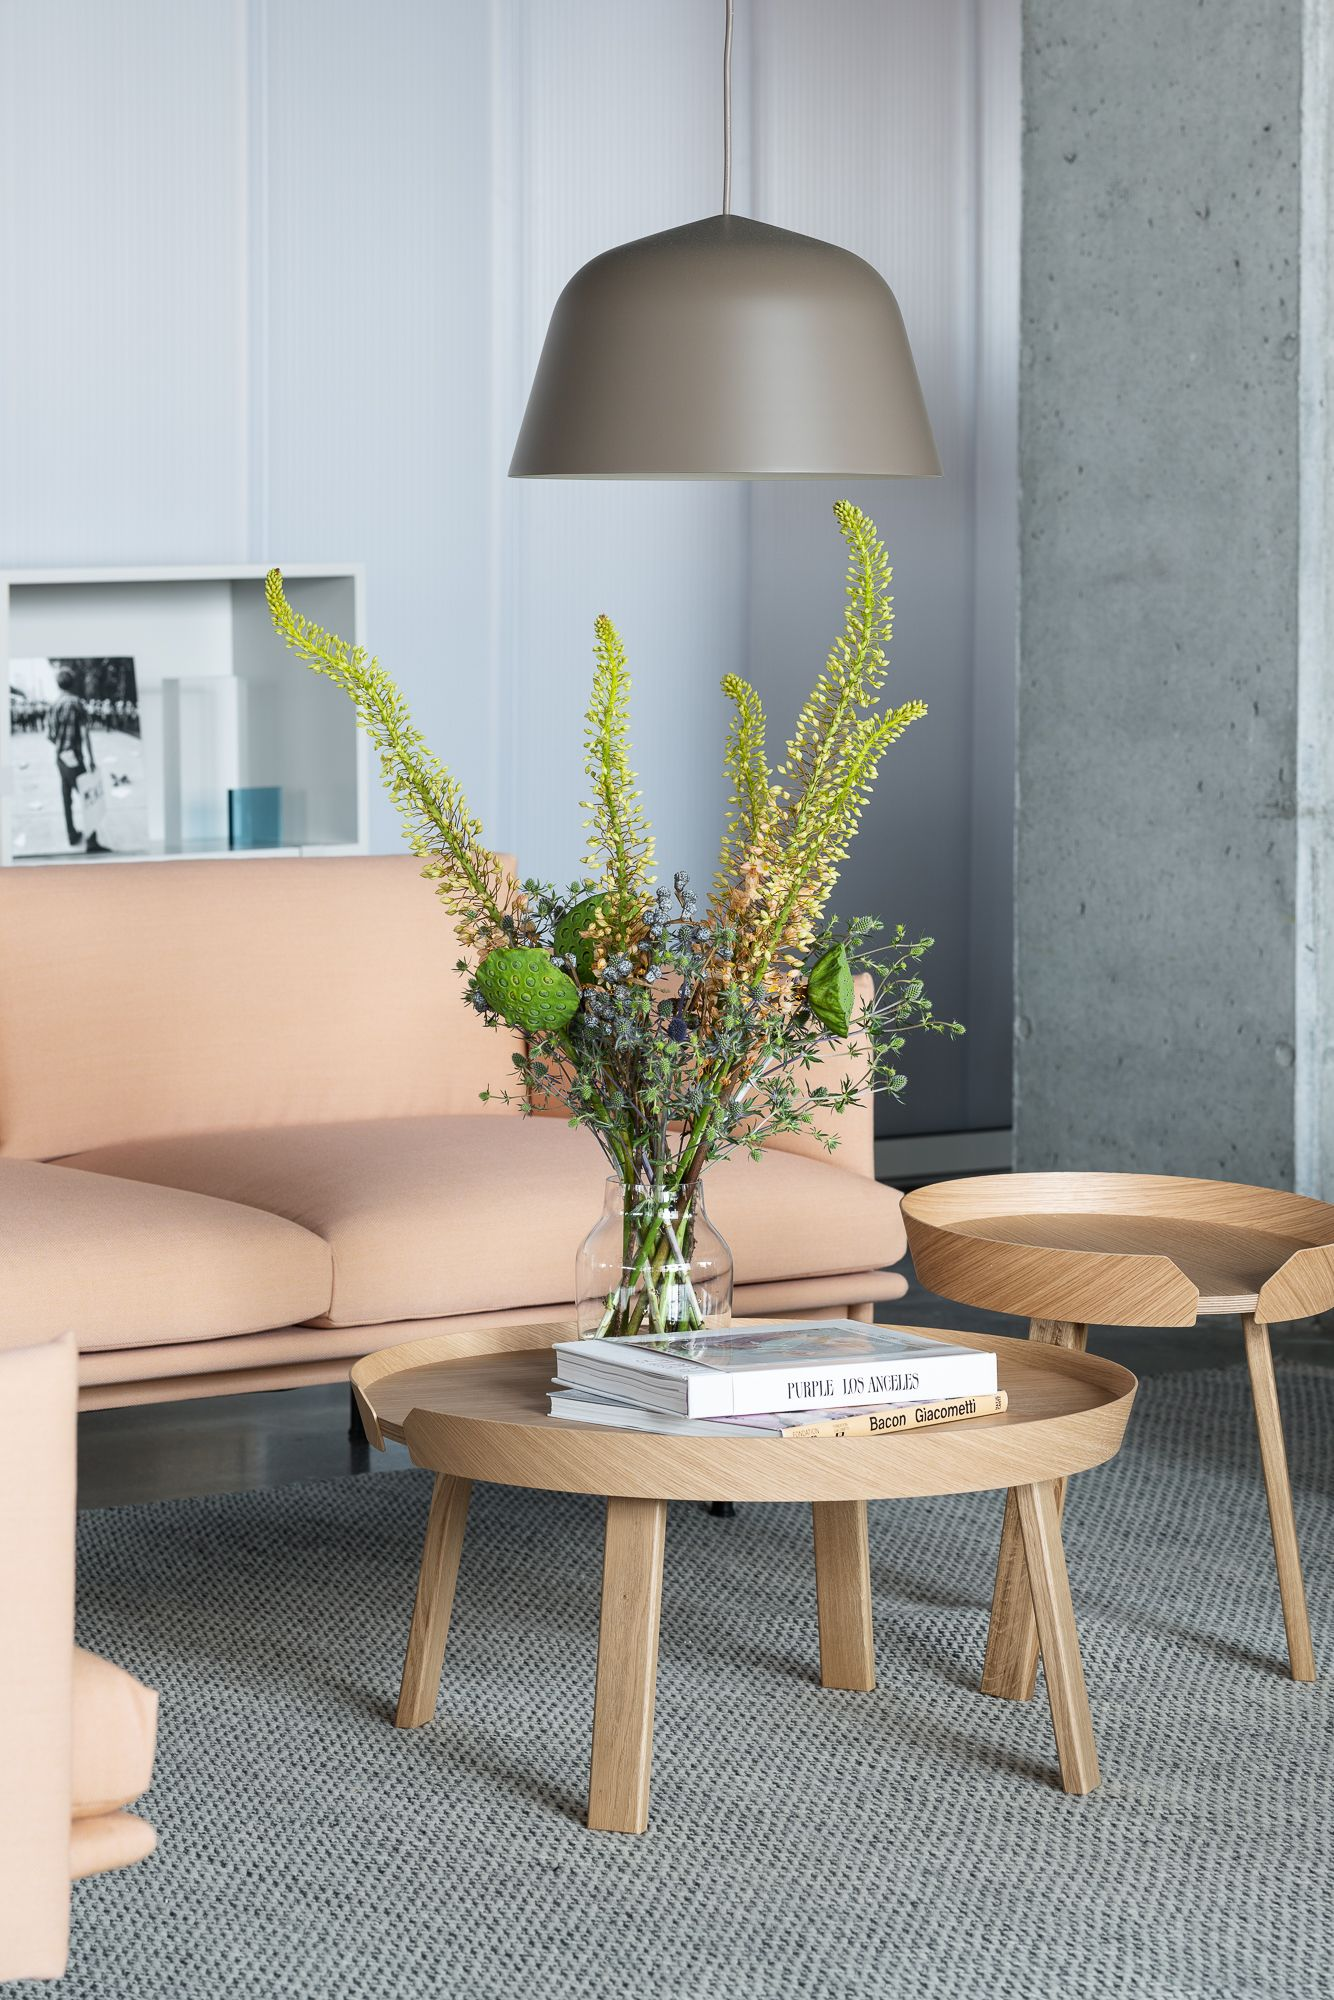 Minimal And Modern Vase For Summer Flower Decorations From Muuto A Form In Scandinavian Design Coffee Table Coffee Table Furniture Design Coffee Table Design